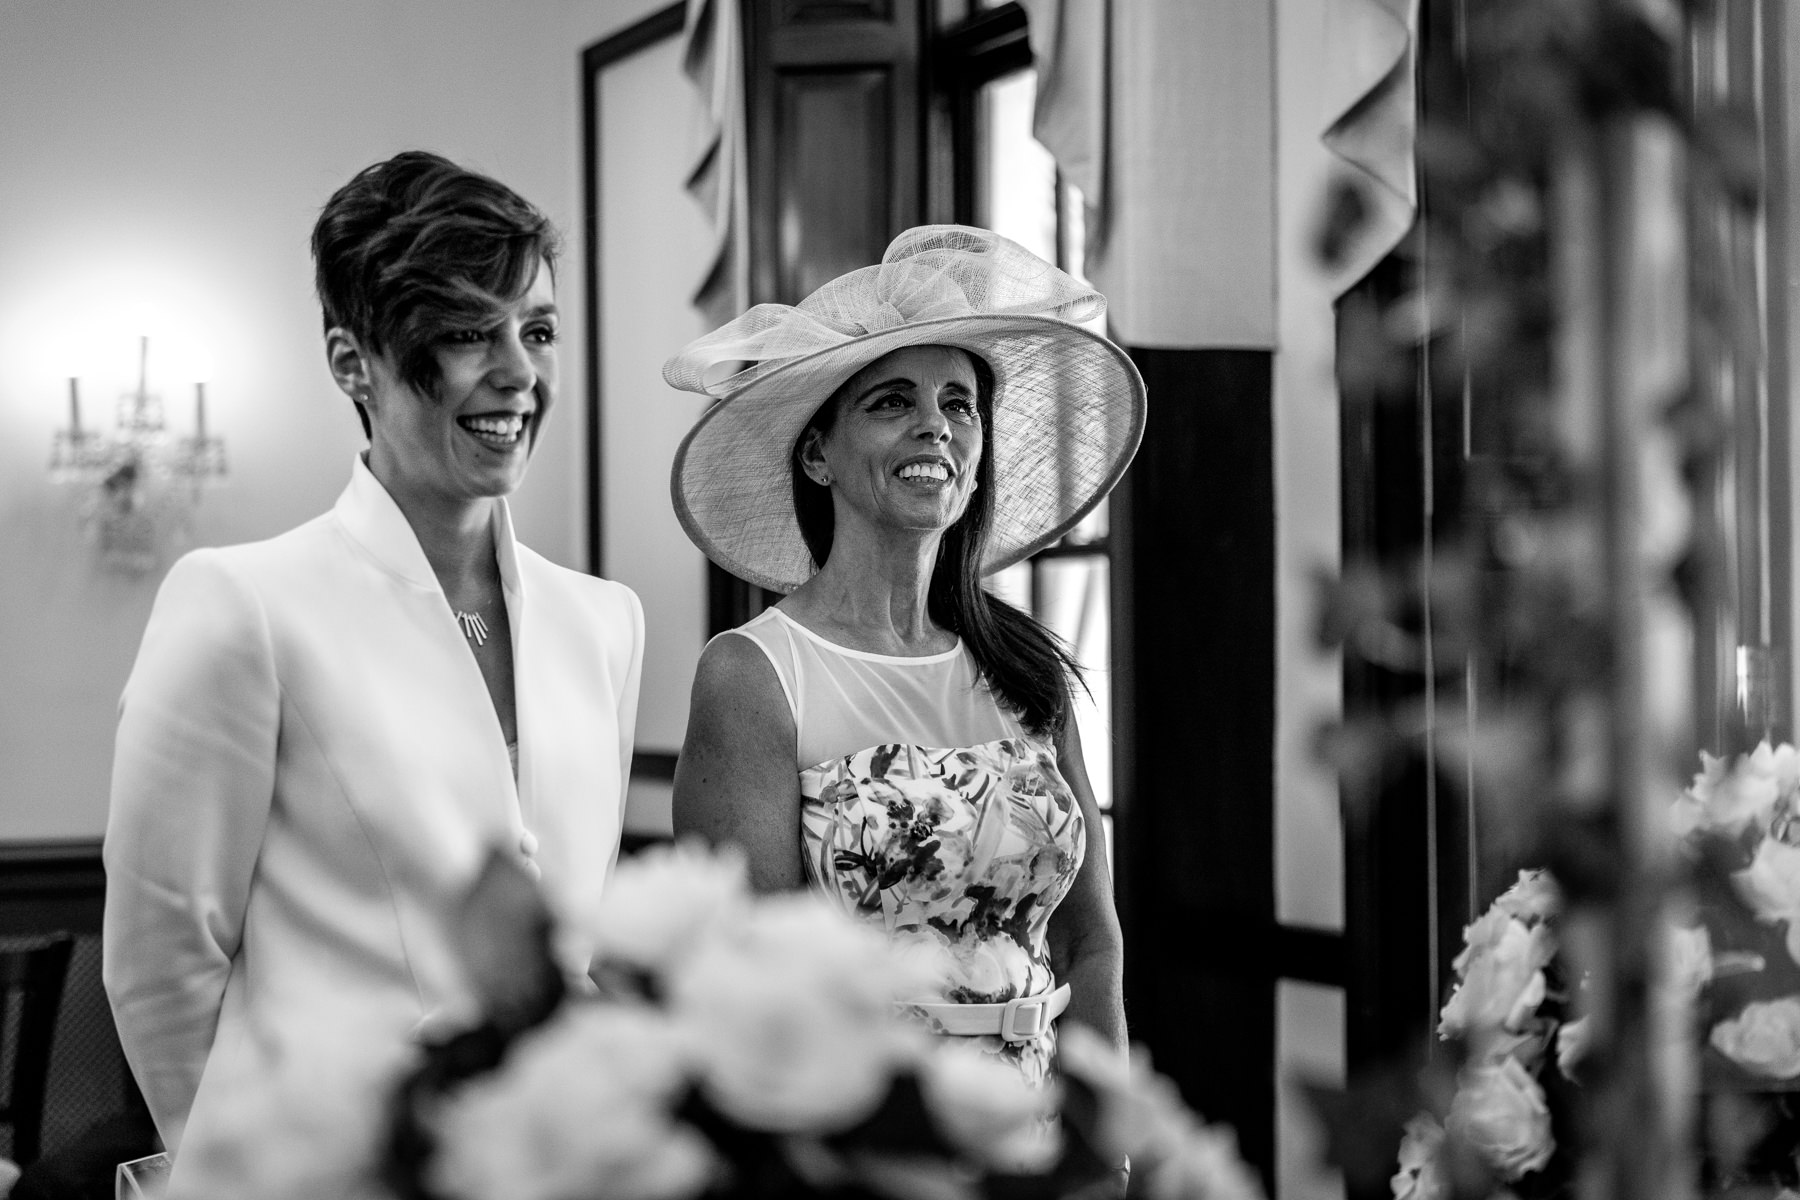 wedding ceremony black_and_white image mother ot bride natural authentic documentary wedding photo bride groom couple beaverbrook surrey hills leatherhead register office wedding photographer